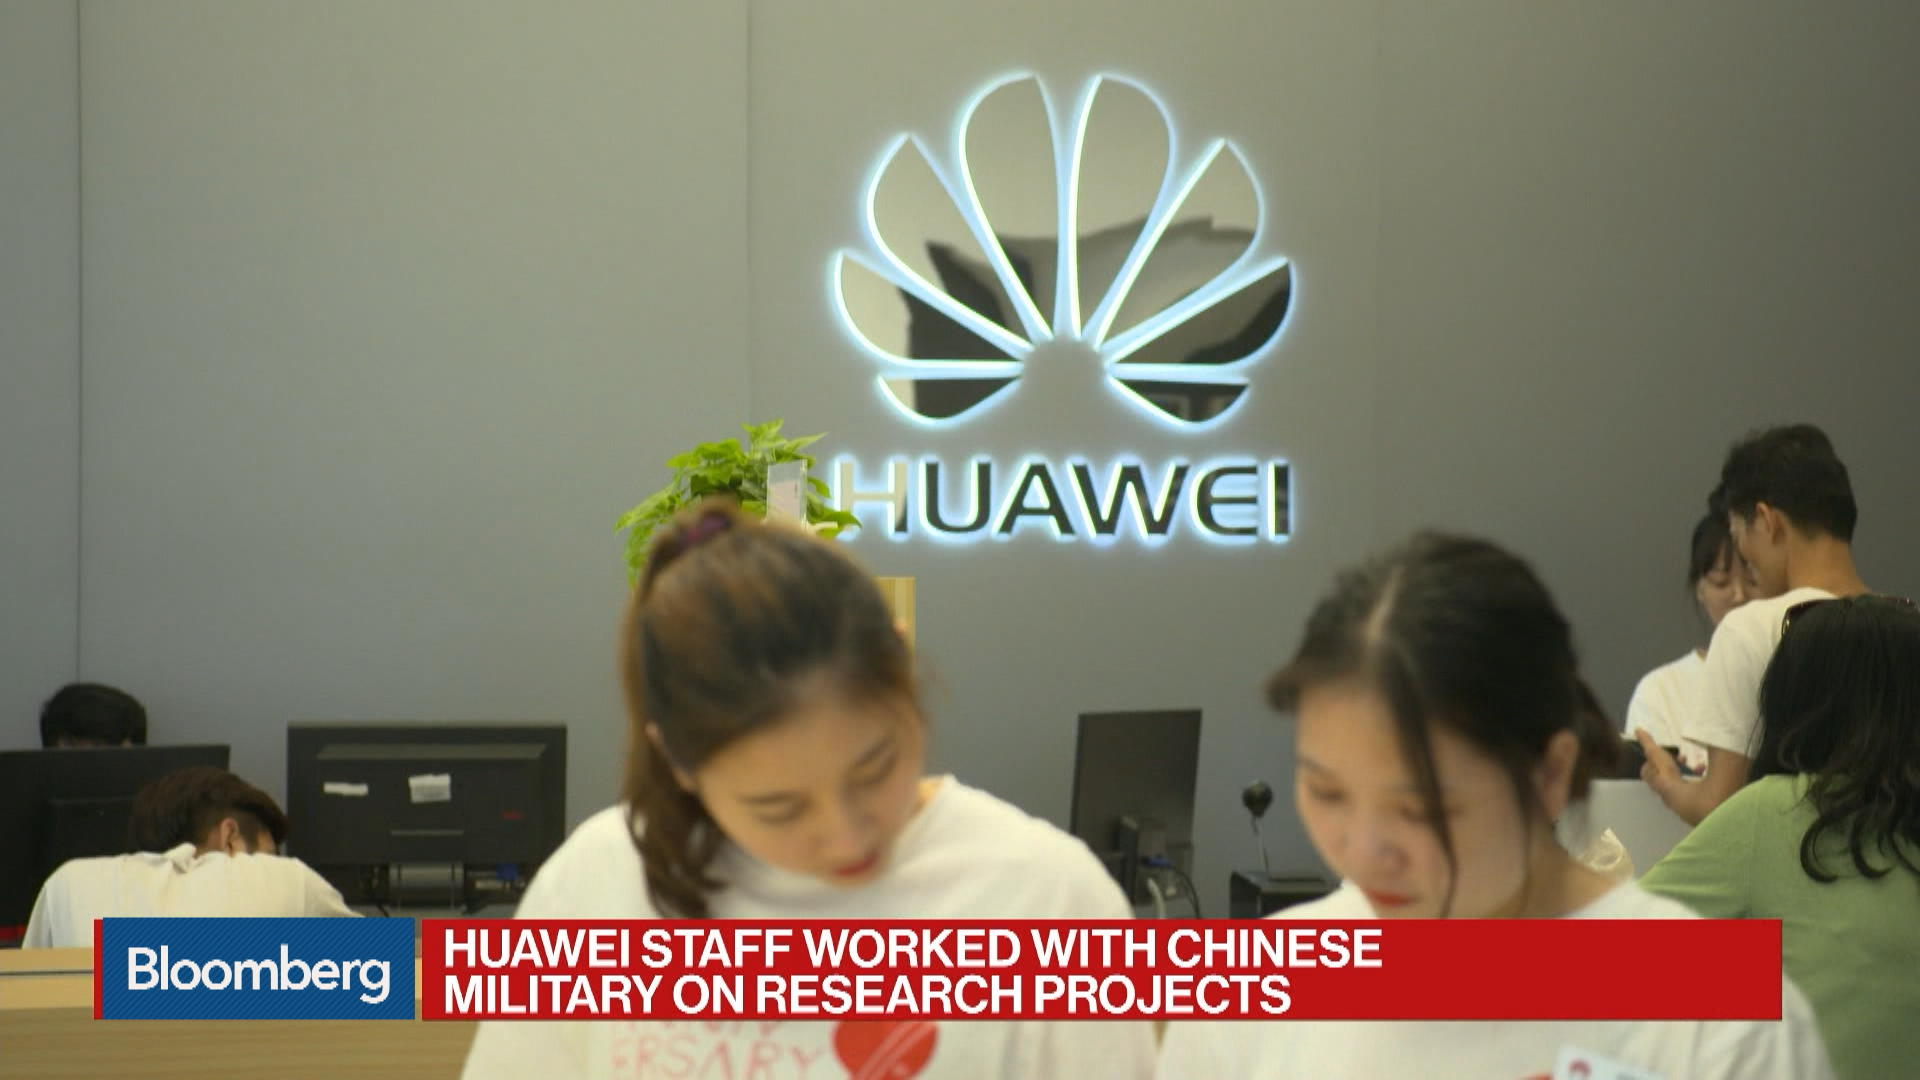 Huawei Personnel Worked With China Military on Research